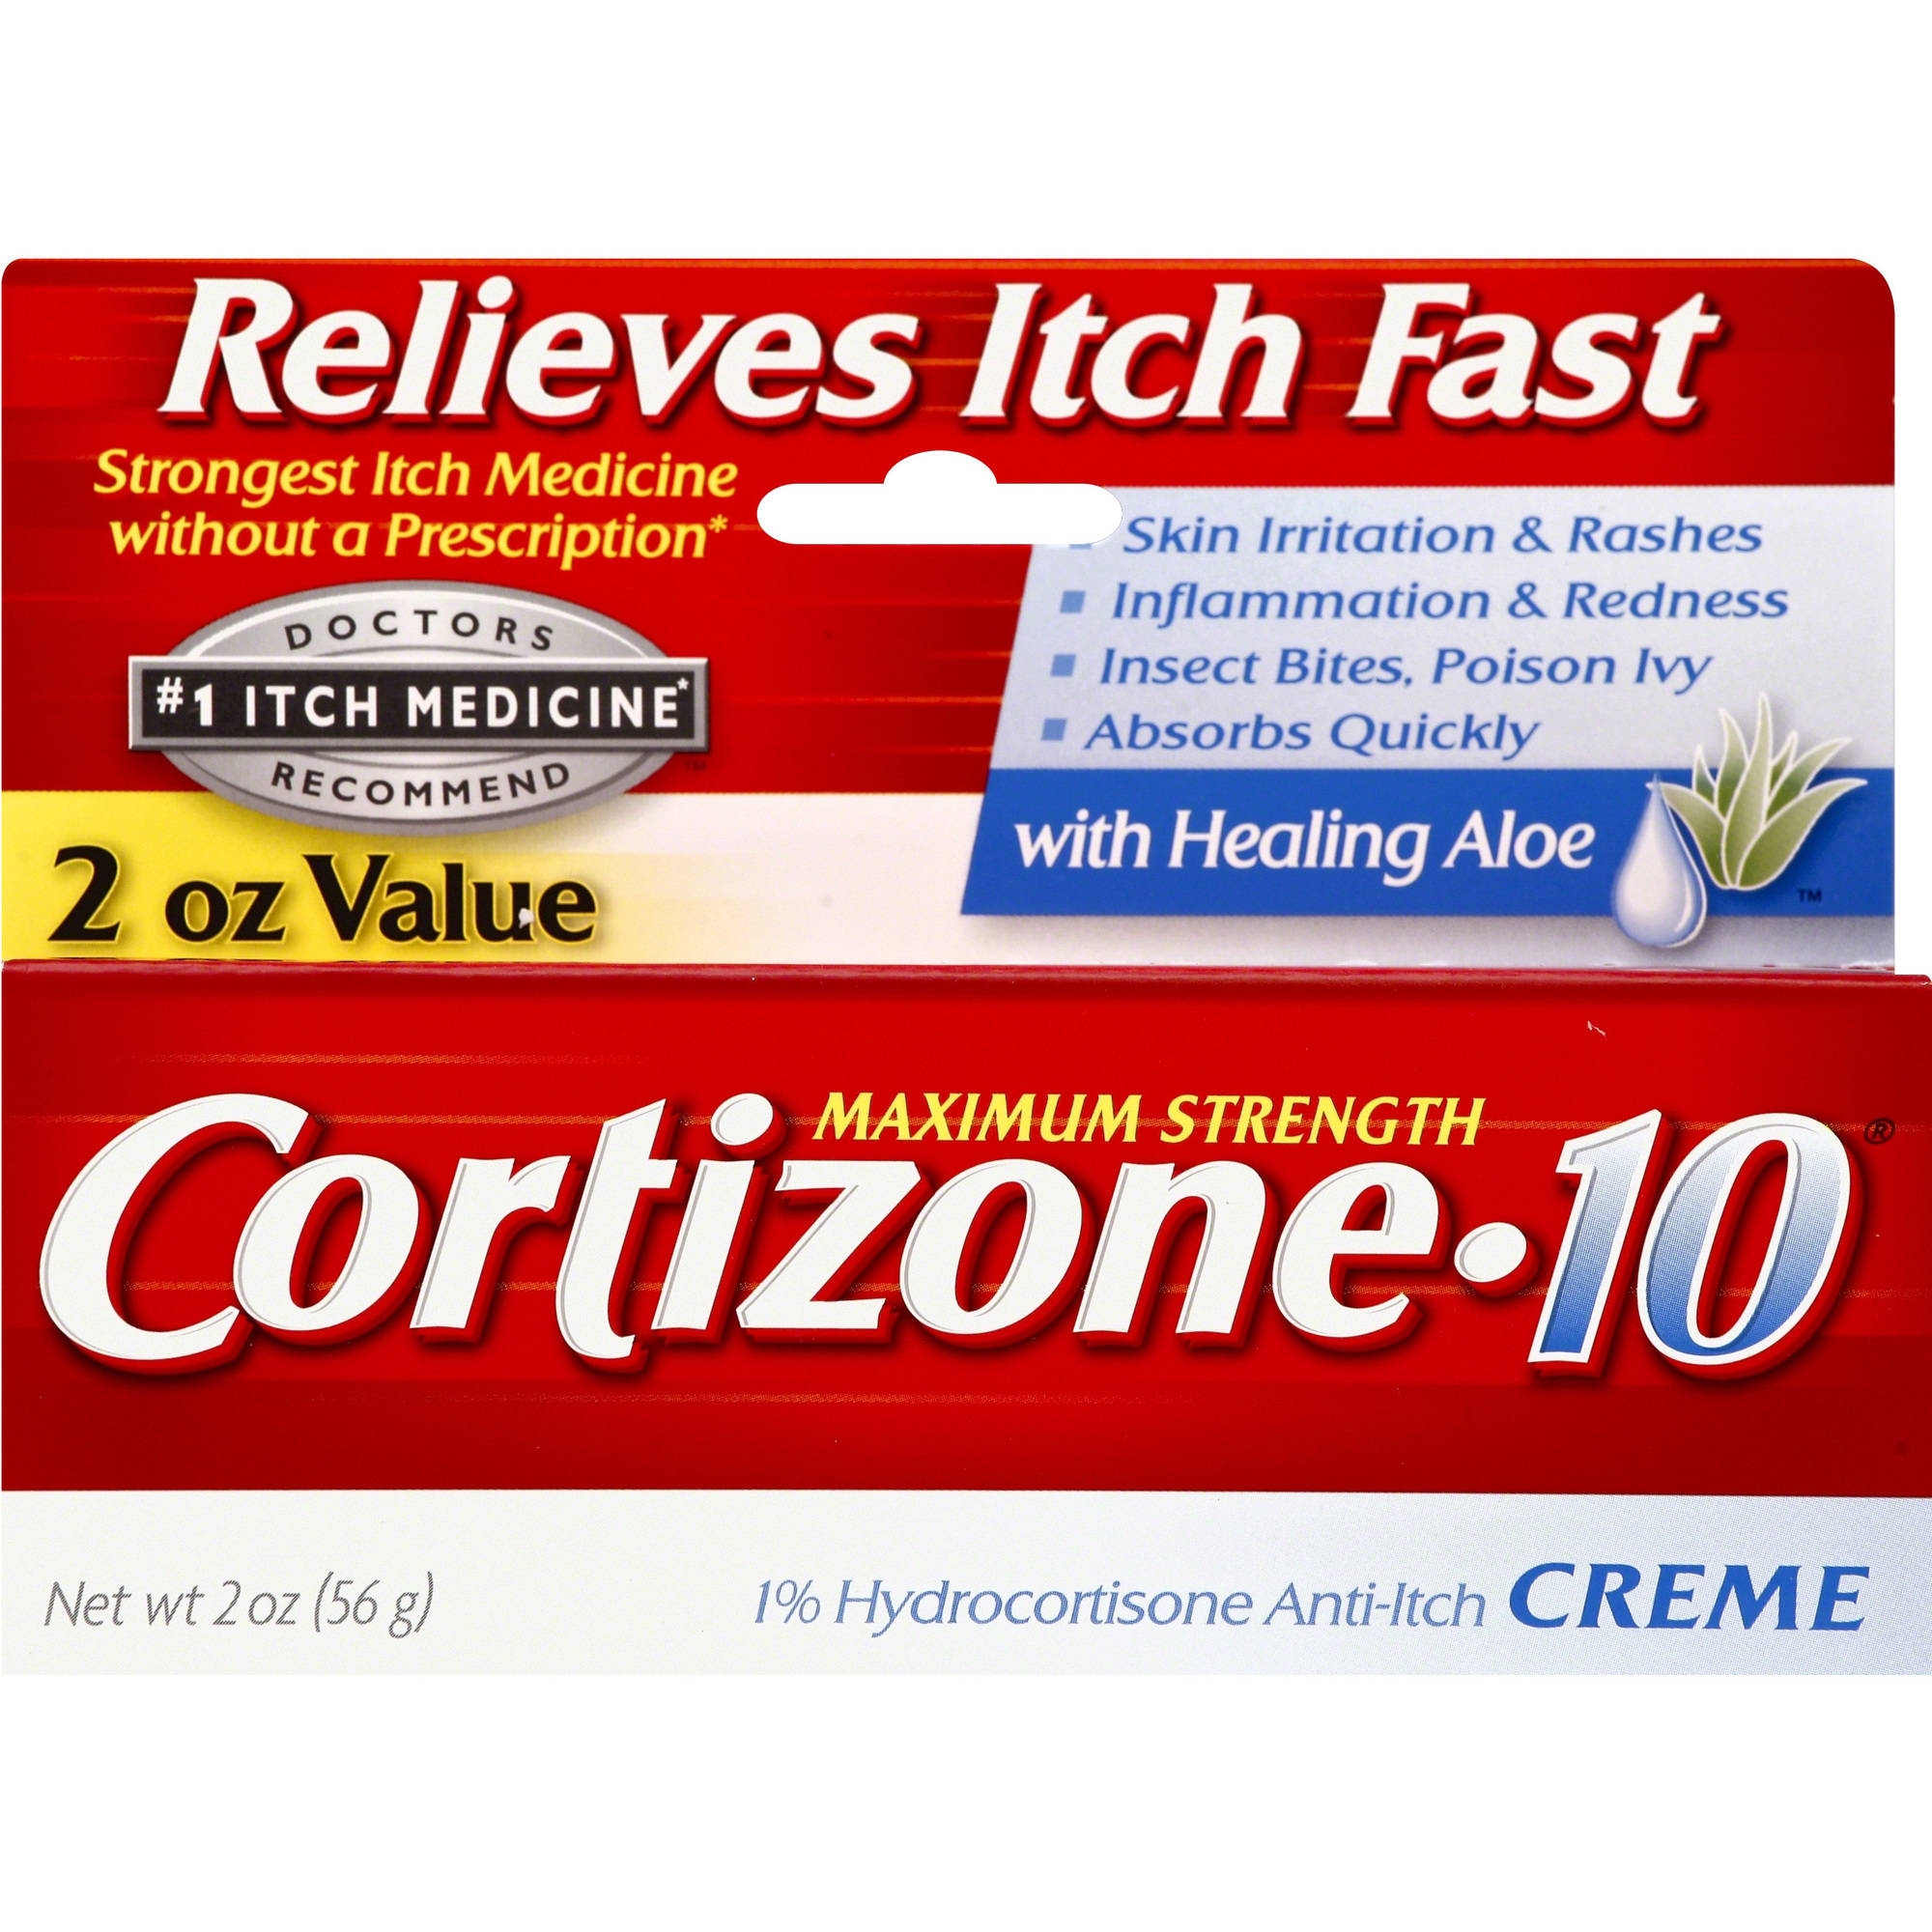 Cortizone 10 Maximum Strength 1% Hydrocortisone Anti-Itch Crème, 2 oz